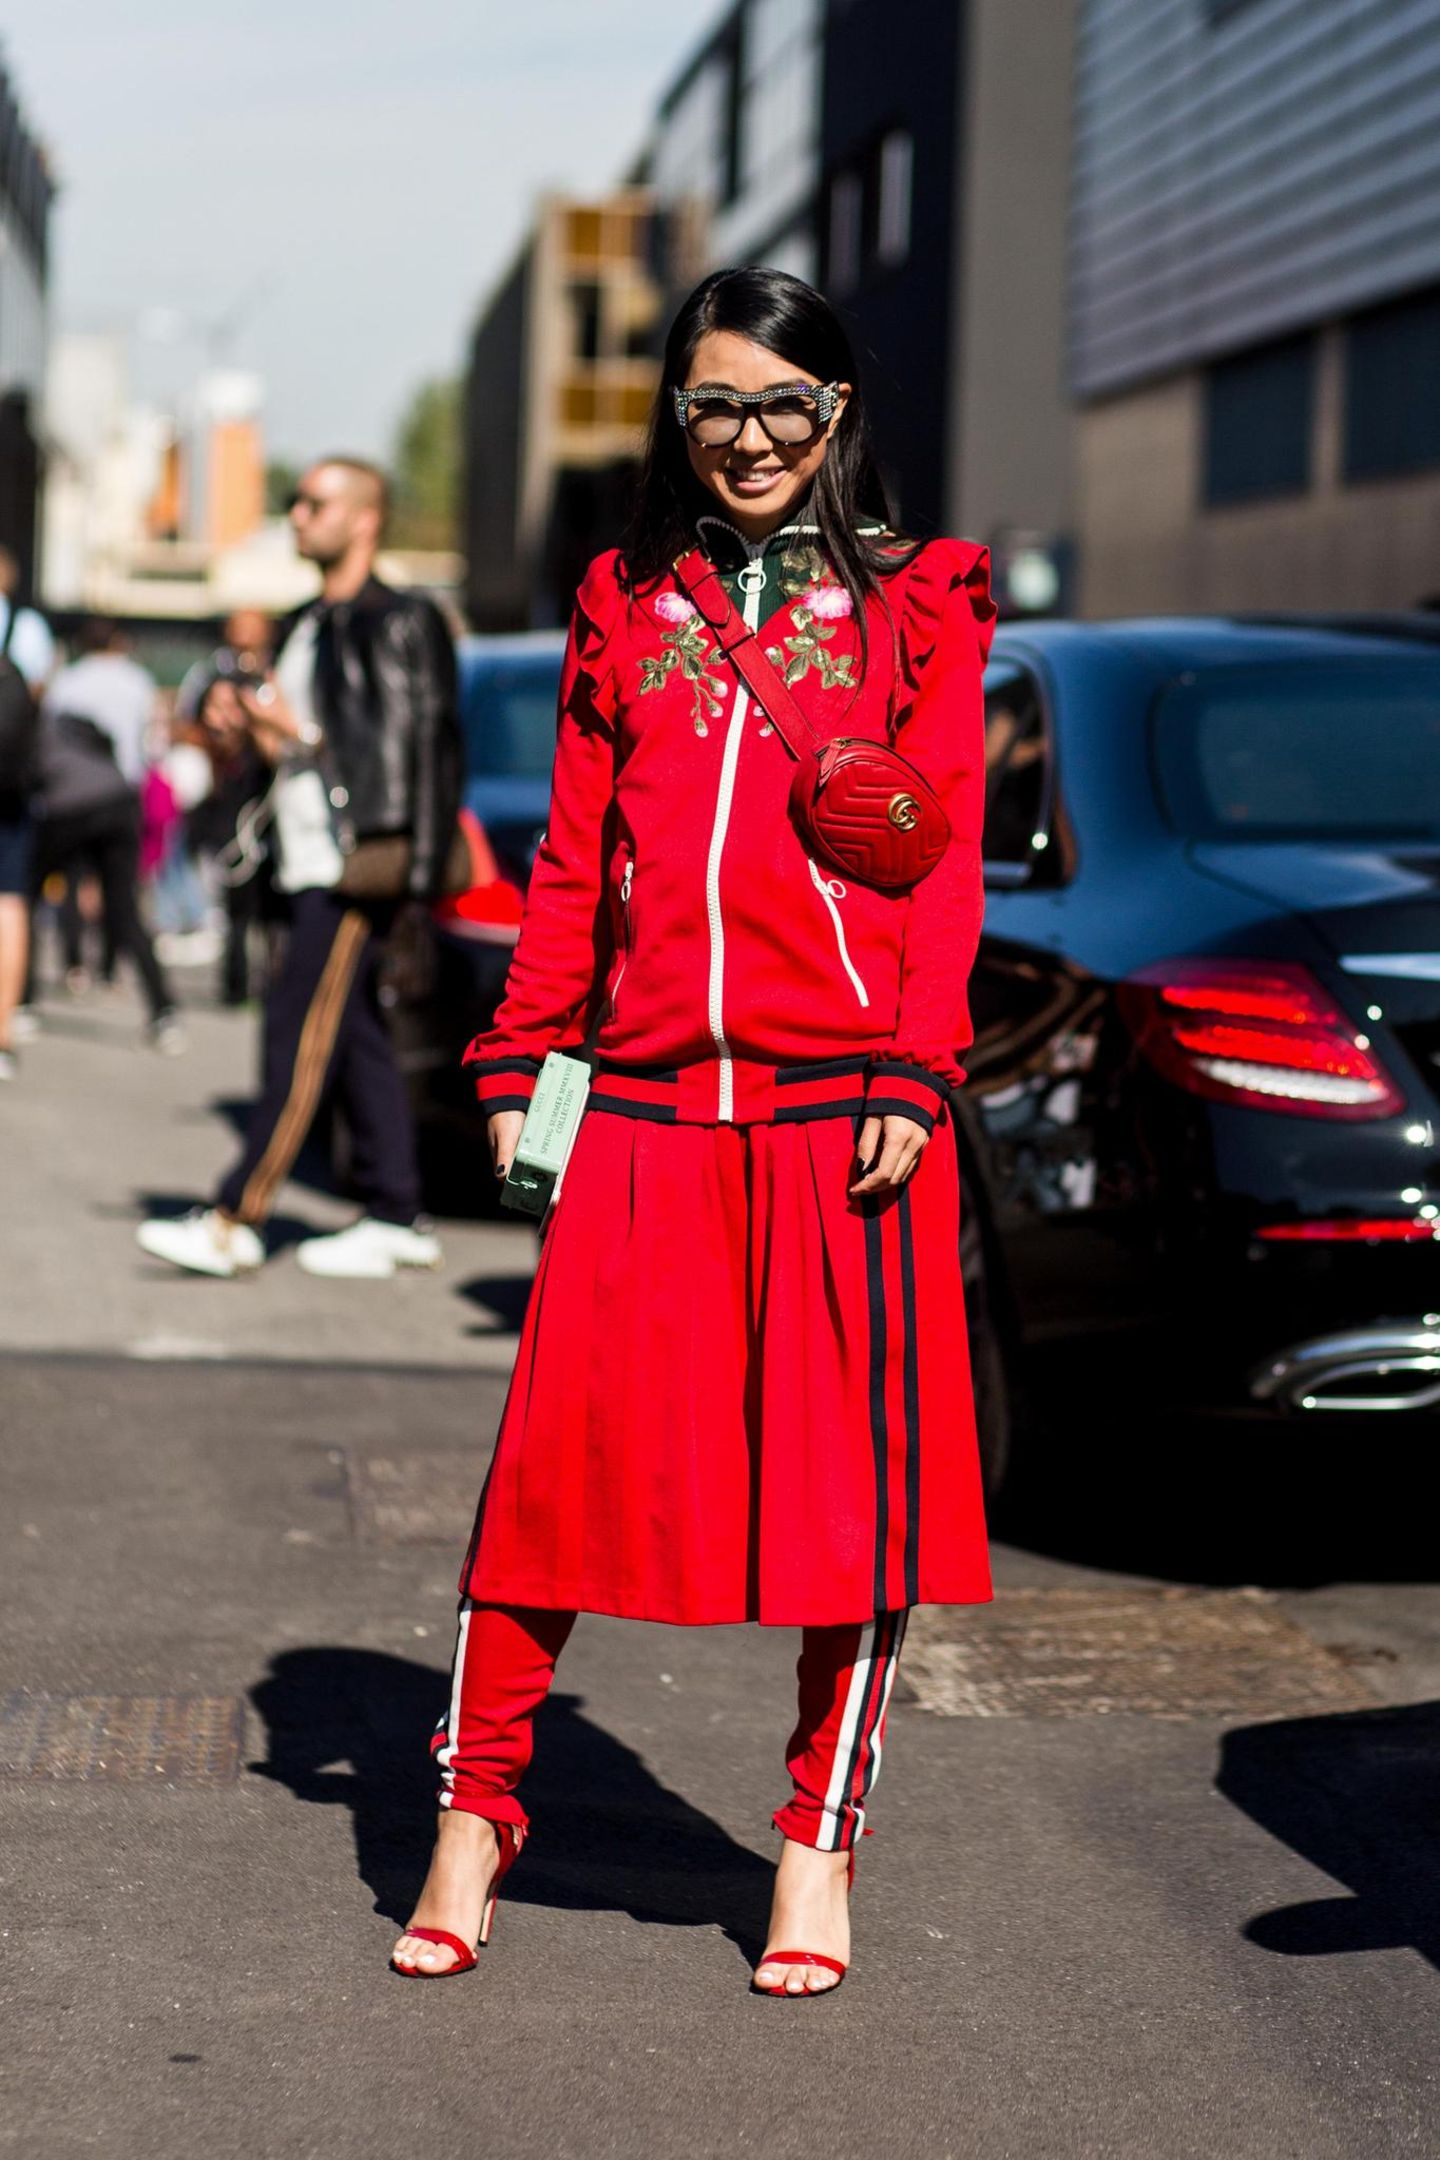 Milan Fashion Week Streetstyle mit rotem Look